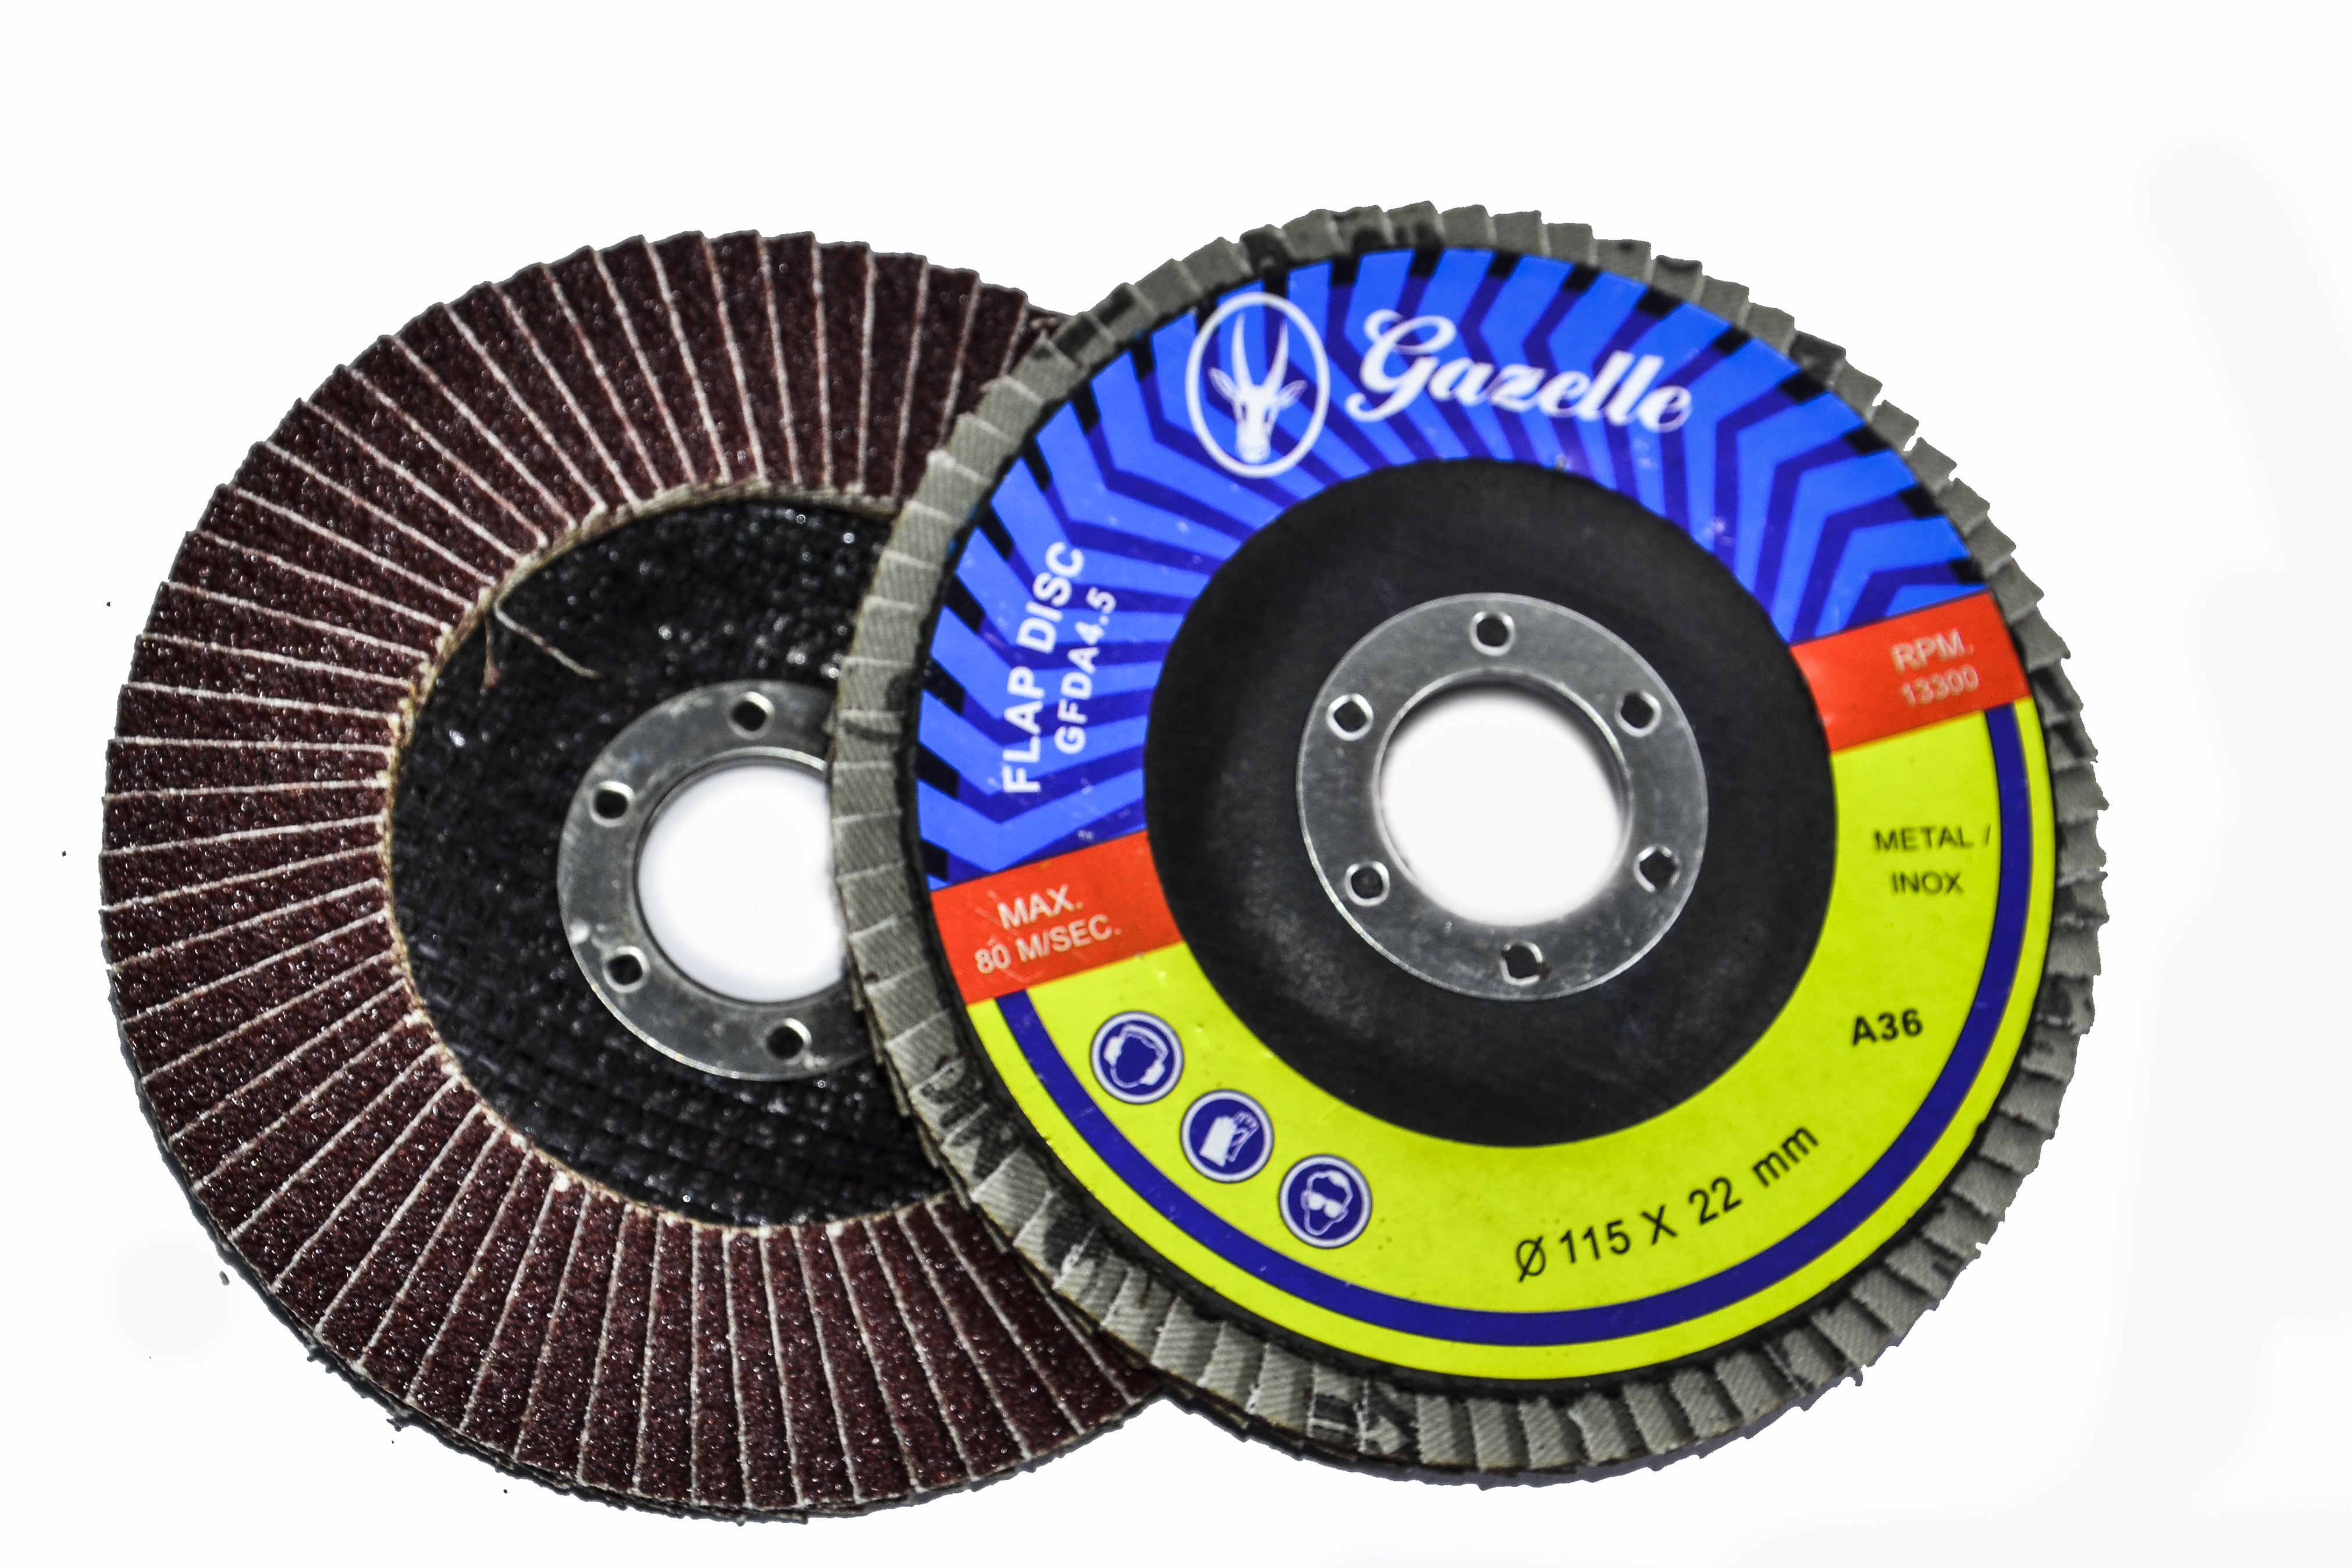 GAZELLE GFDA4580G - Flap Disc 4.5in – 115mm x 80Grit Aluminium Oxide